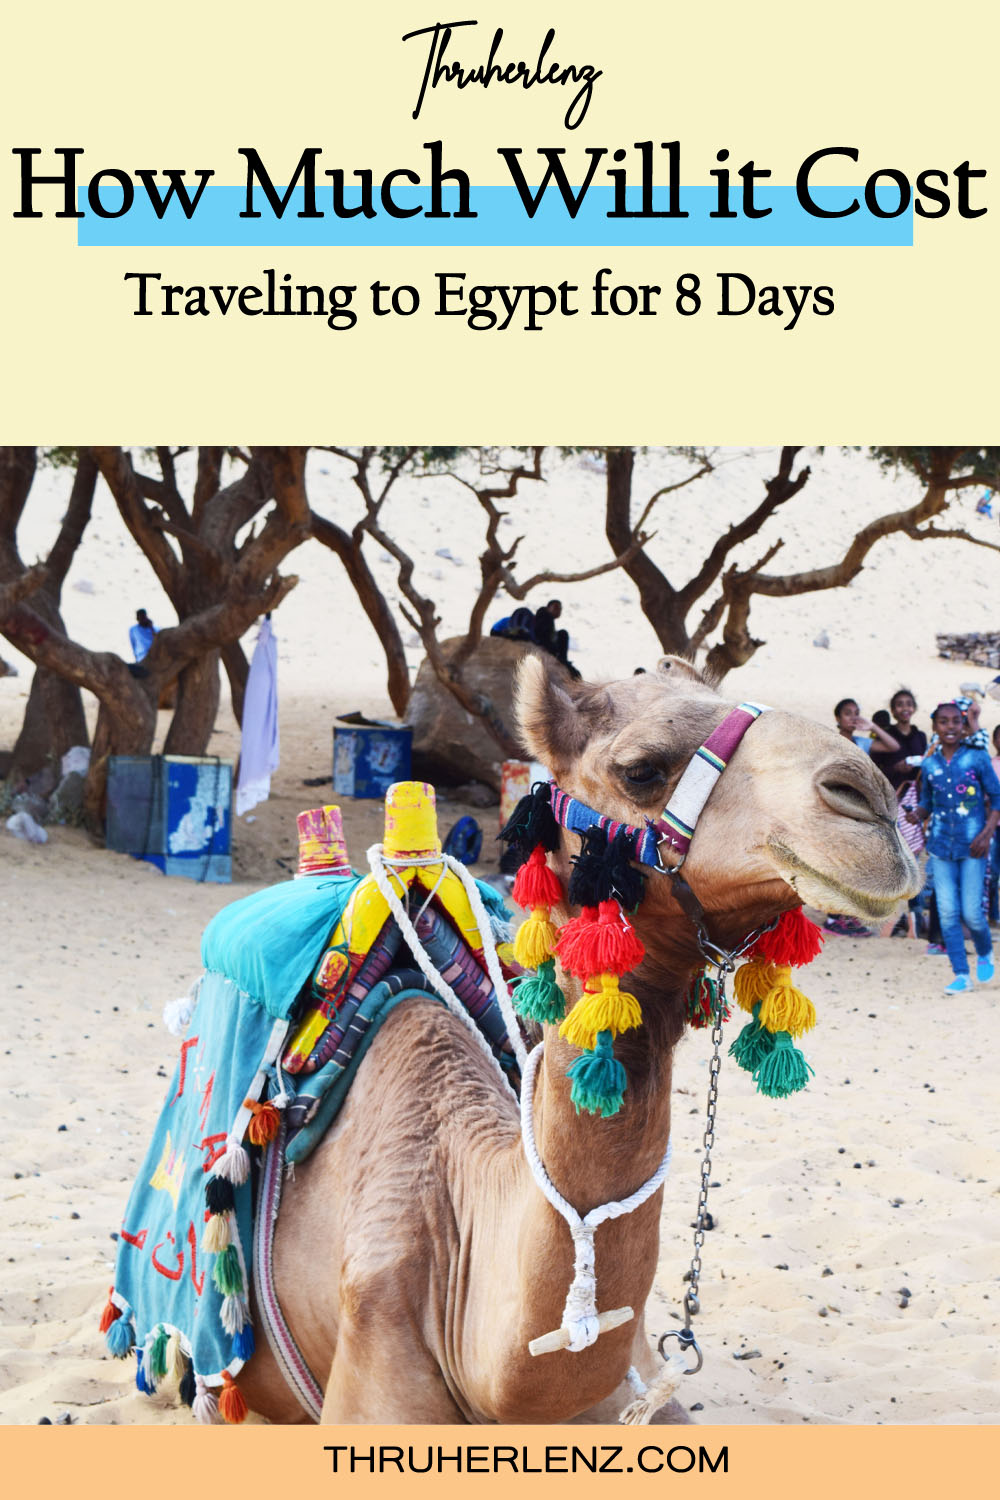 How Much Will it Cost You to Travel to Egypt